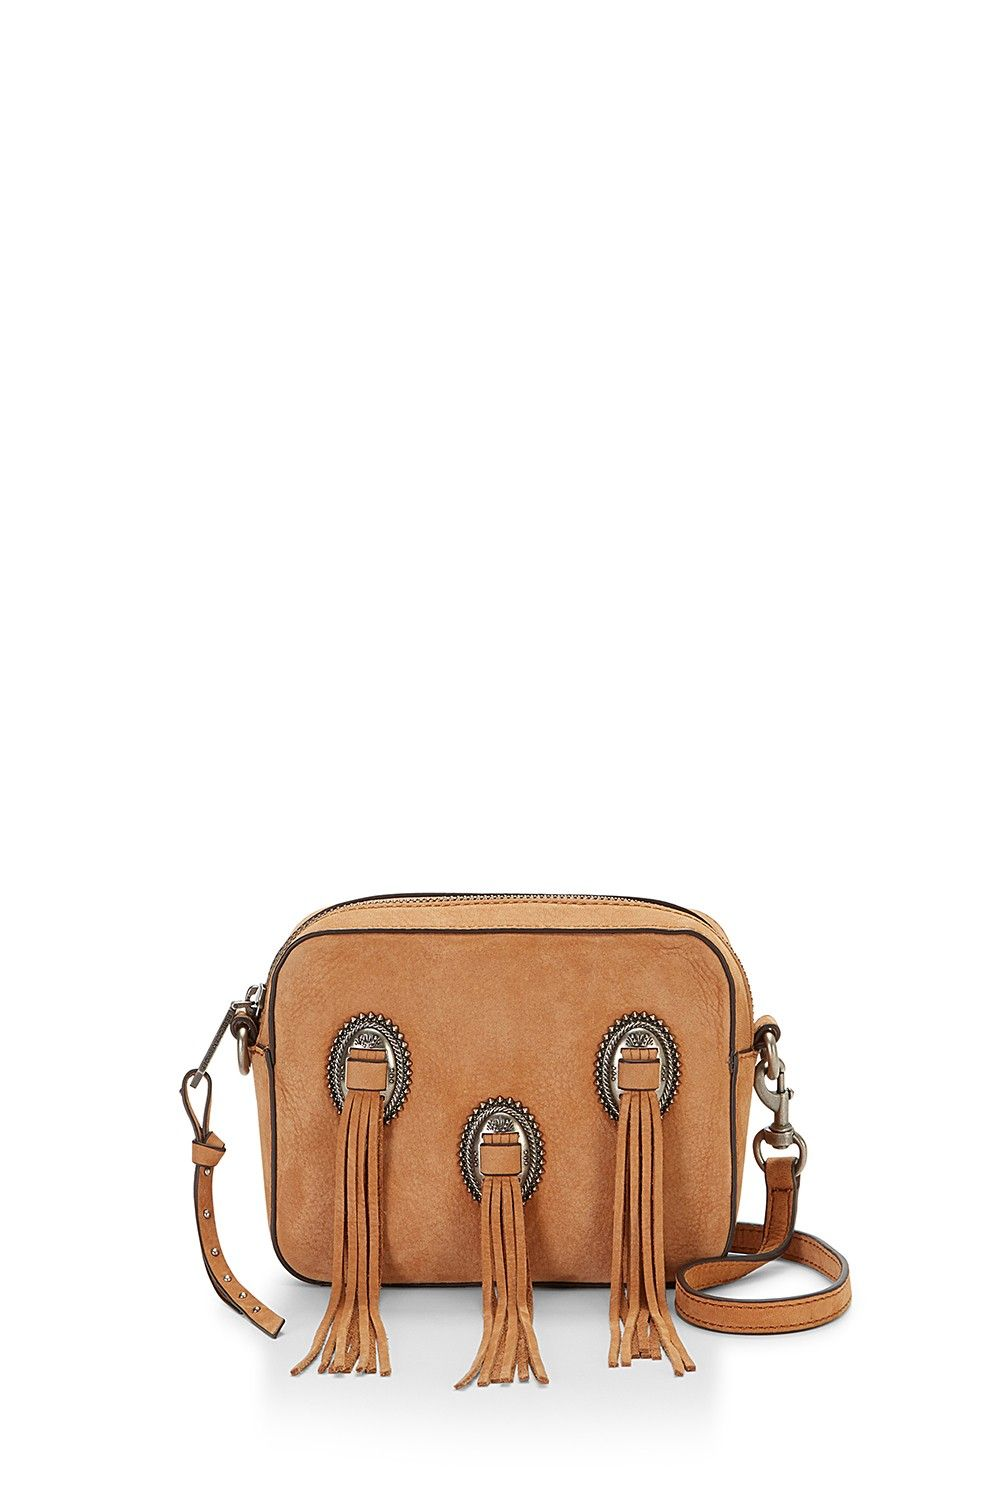 Western Crossbody Howdy This Supple Leather Box Bag Features Luxe Tassels Ancd By Metal Medallions For A Cool Southwestern Vibe